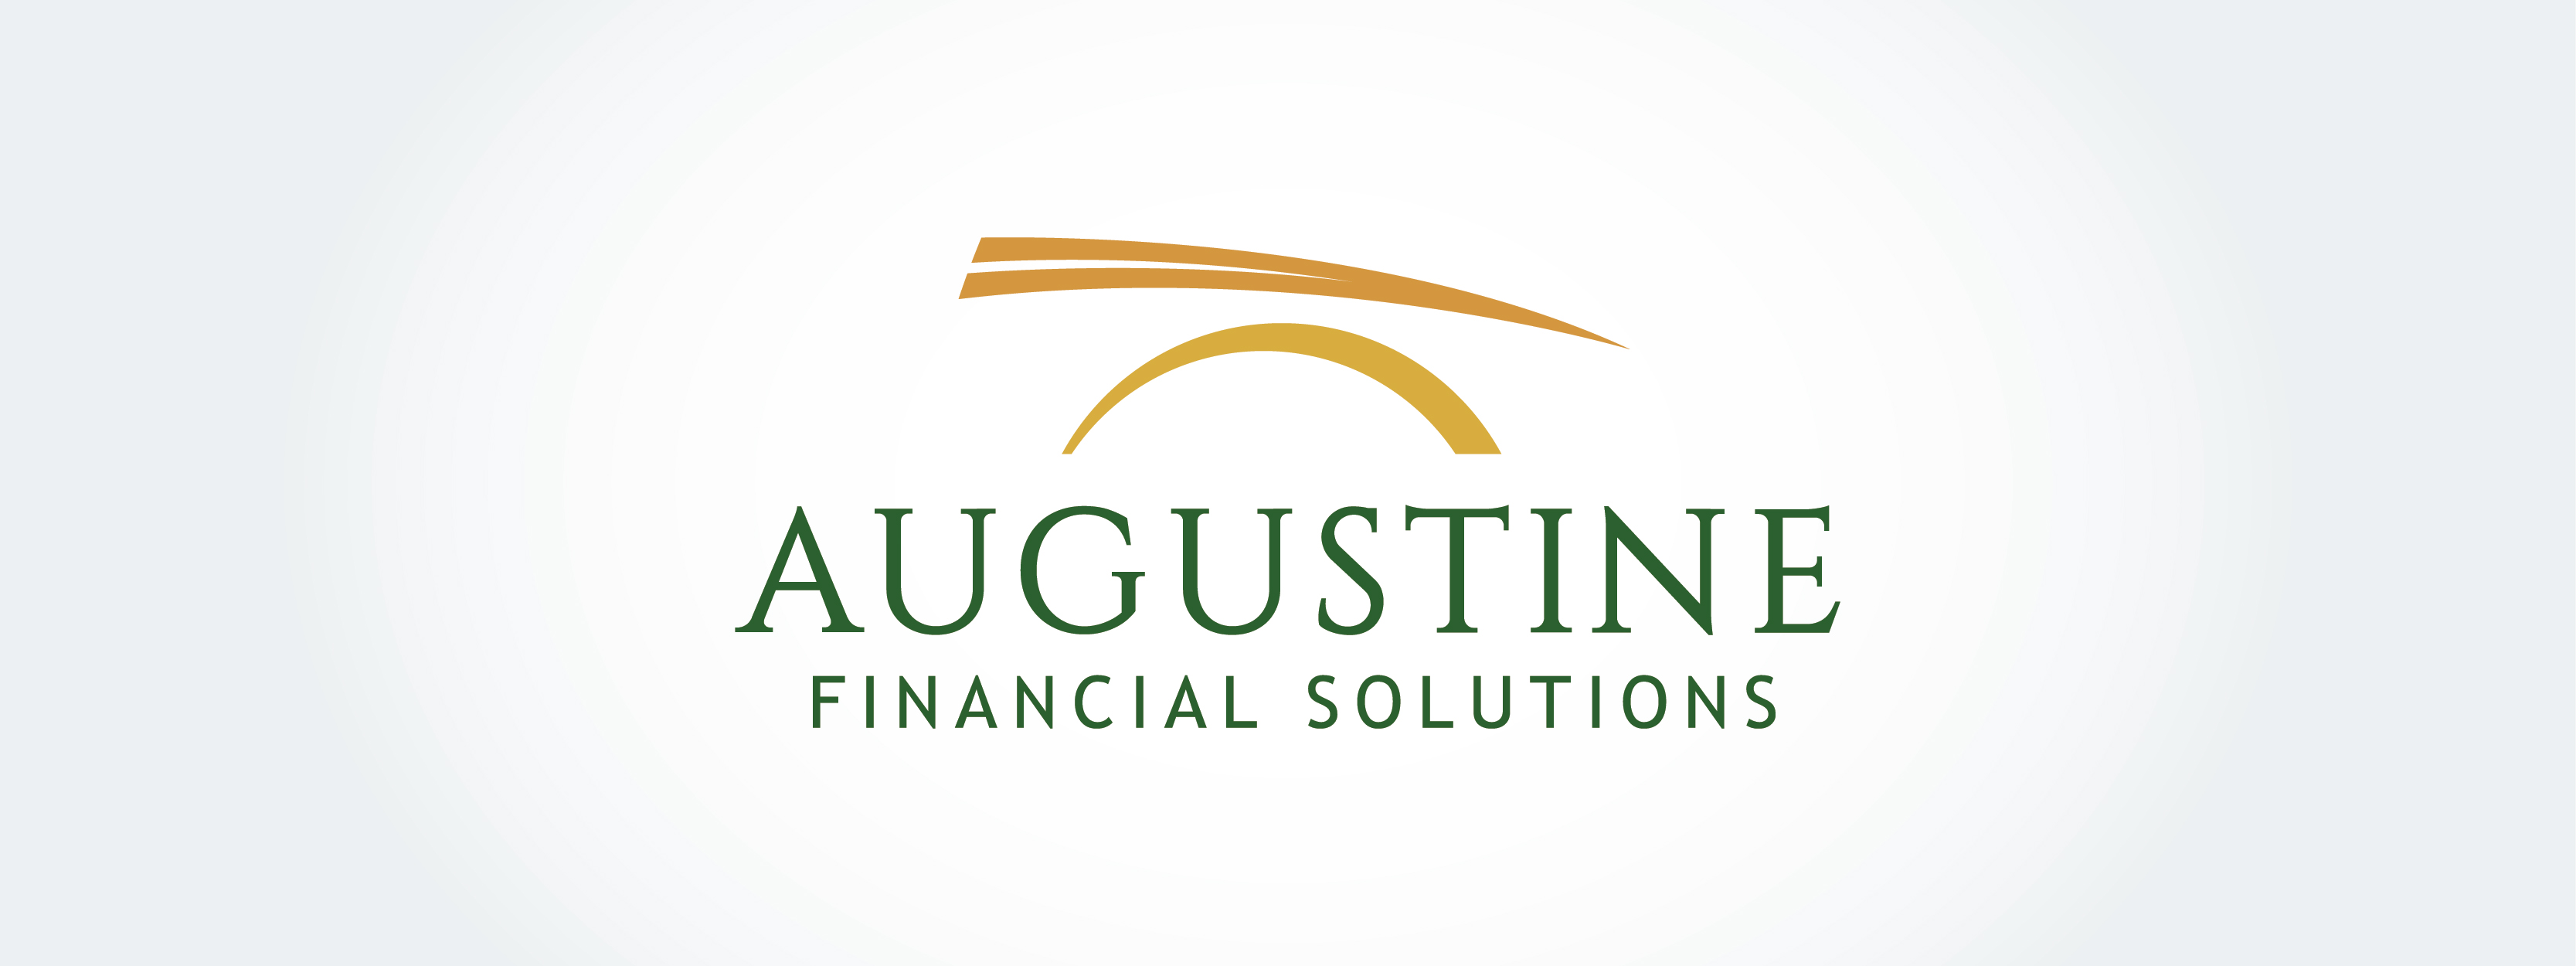 Augustine Financial Solutions logo Featured Image